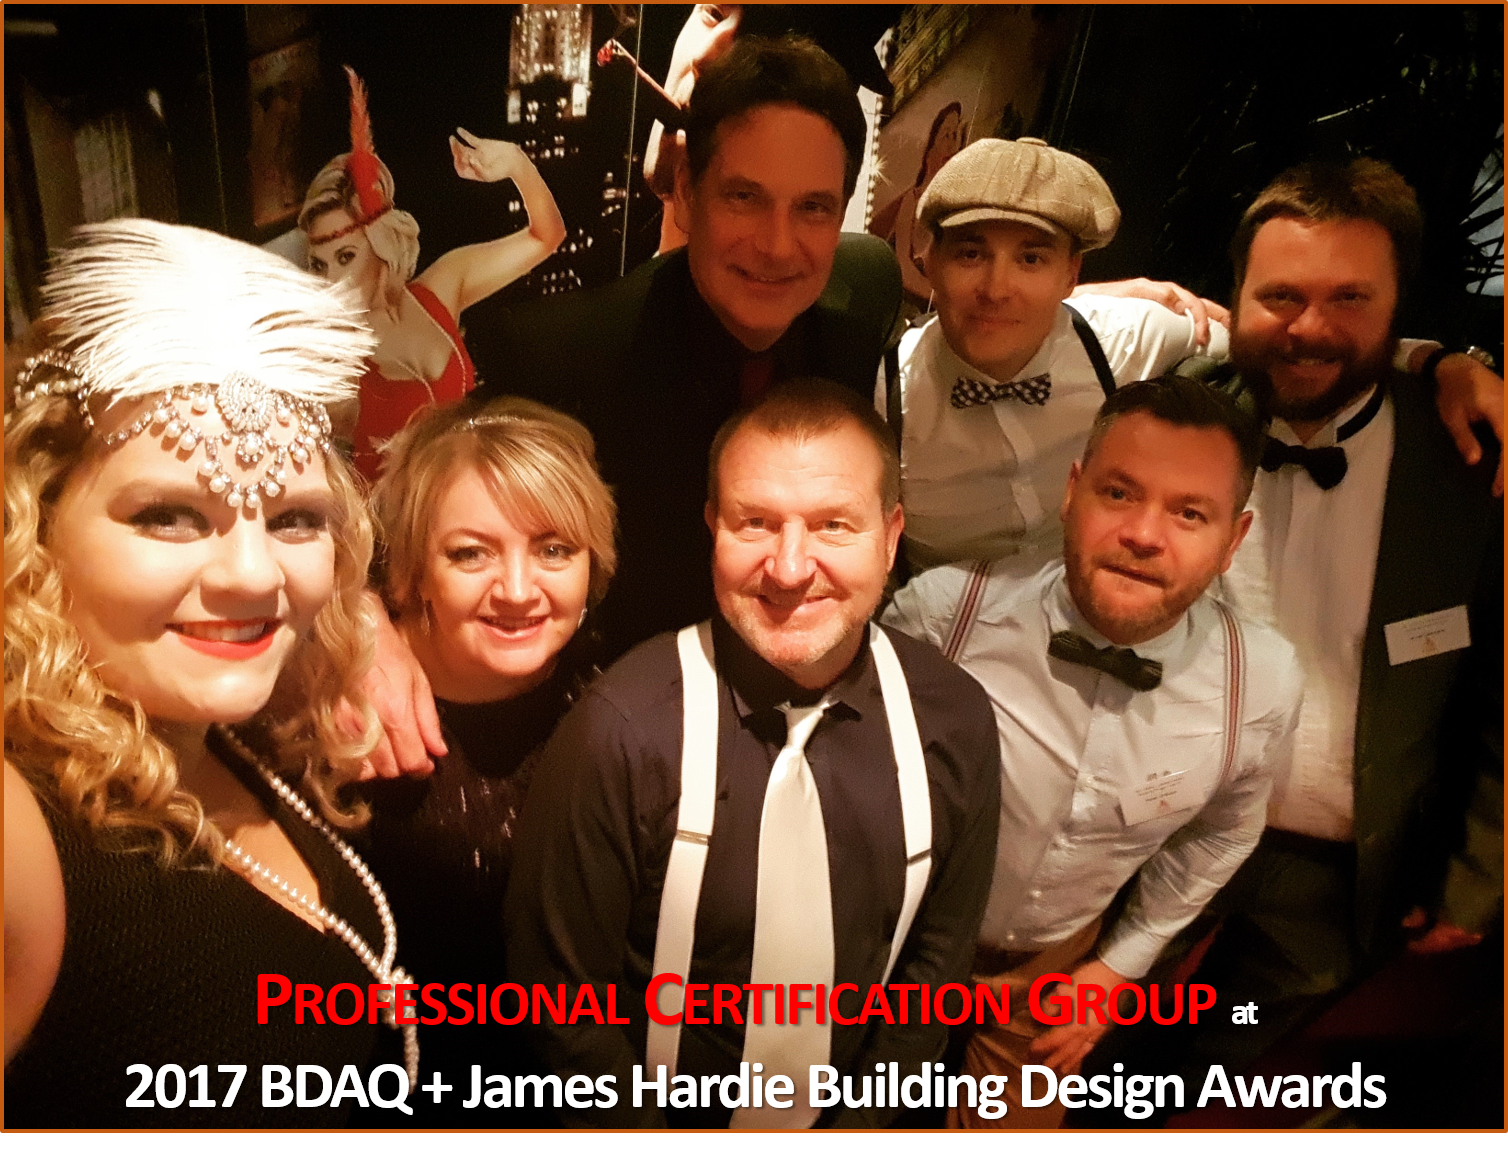 Private certifiers 2017 bdaq and james hardie building for Certified professional building designer